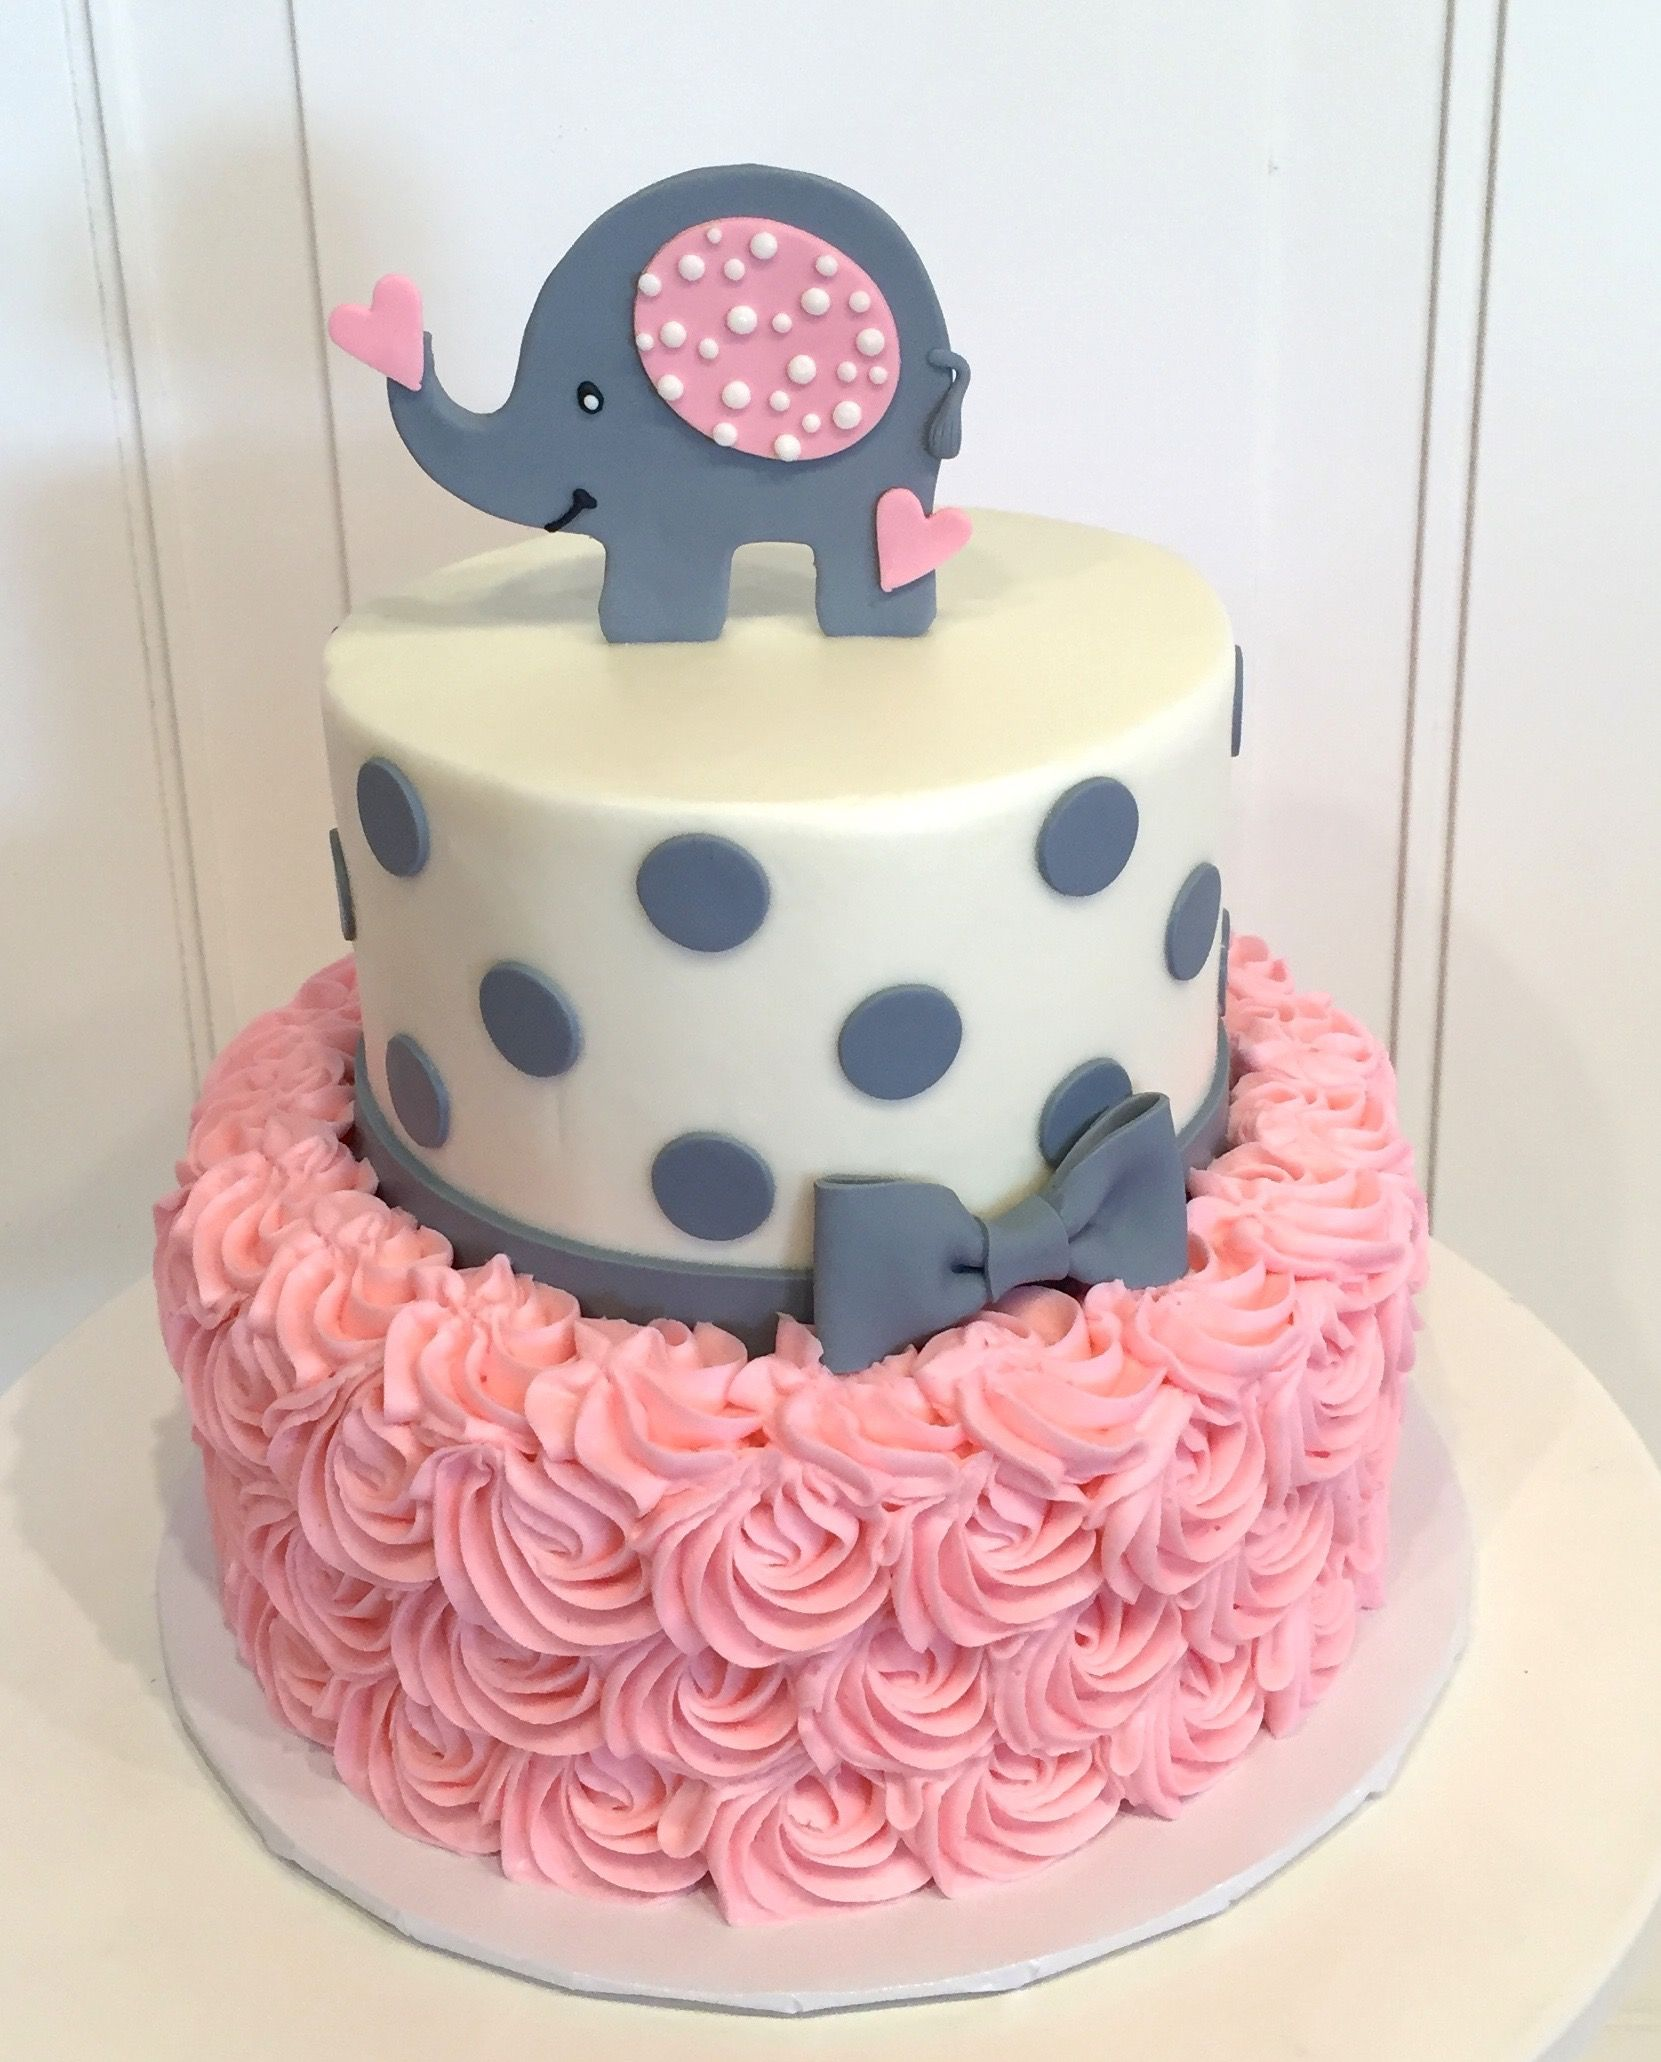 Engrossing Baby Shower Cake Elephant On Cake Is A Pink Rosette Baby Shower Girl Cupcakes Baby Shower Girl Favors Elephant On Cake Is A Pink Rosette Baby Shower Cake